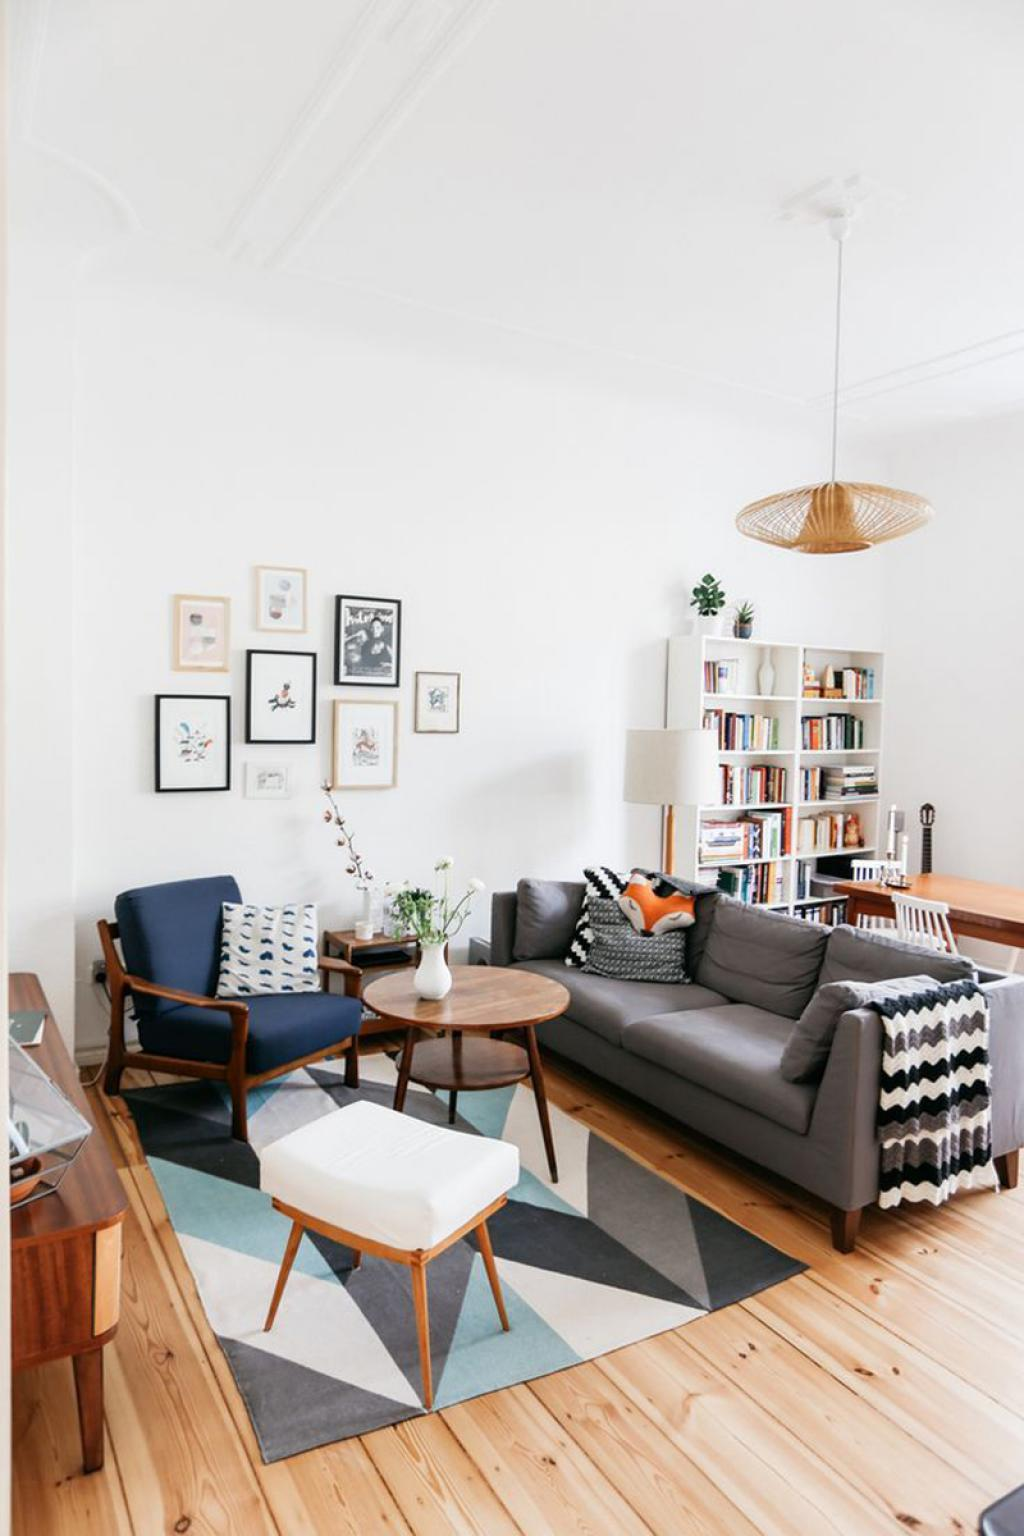 We Found the Scandinavian Living Room Ideas You Were Looking For scandinavian living room We Found the Scandinavian Living Room Ideas You Were Looking For We Found the Scandinavian Living Room Ideas You Were Looking For 5